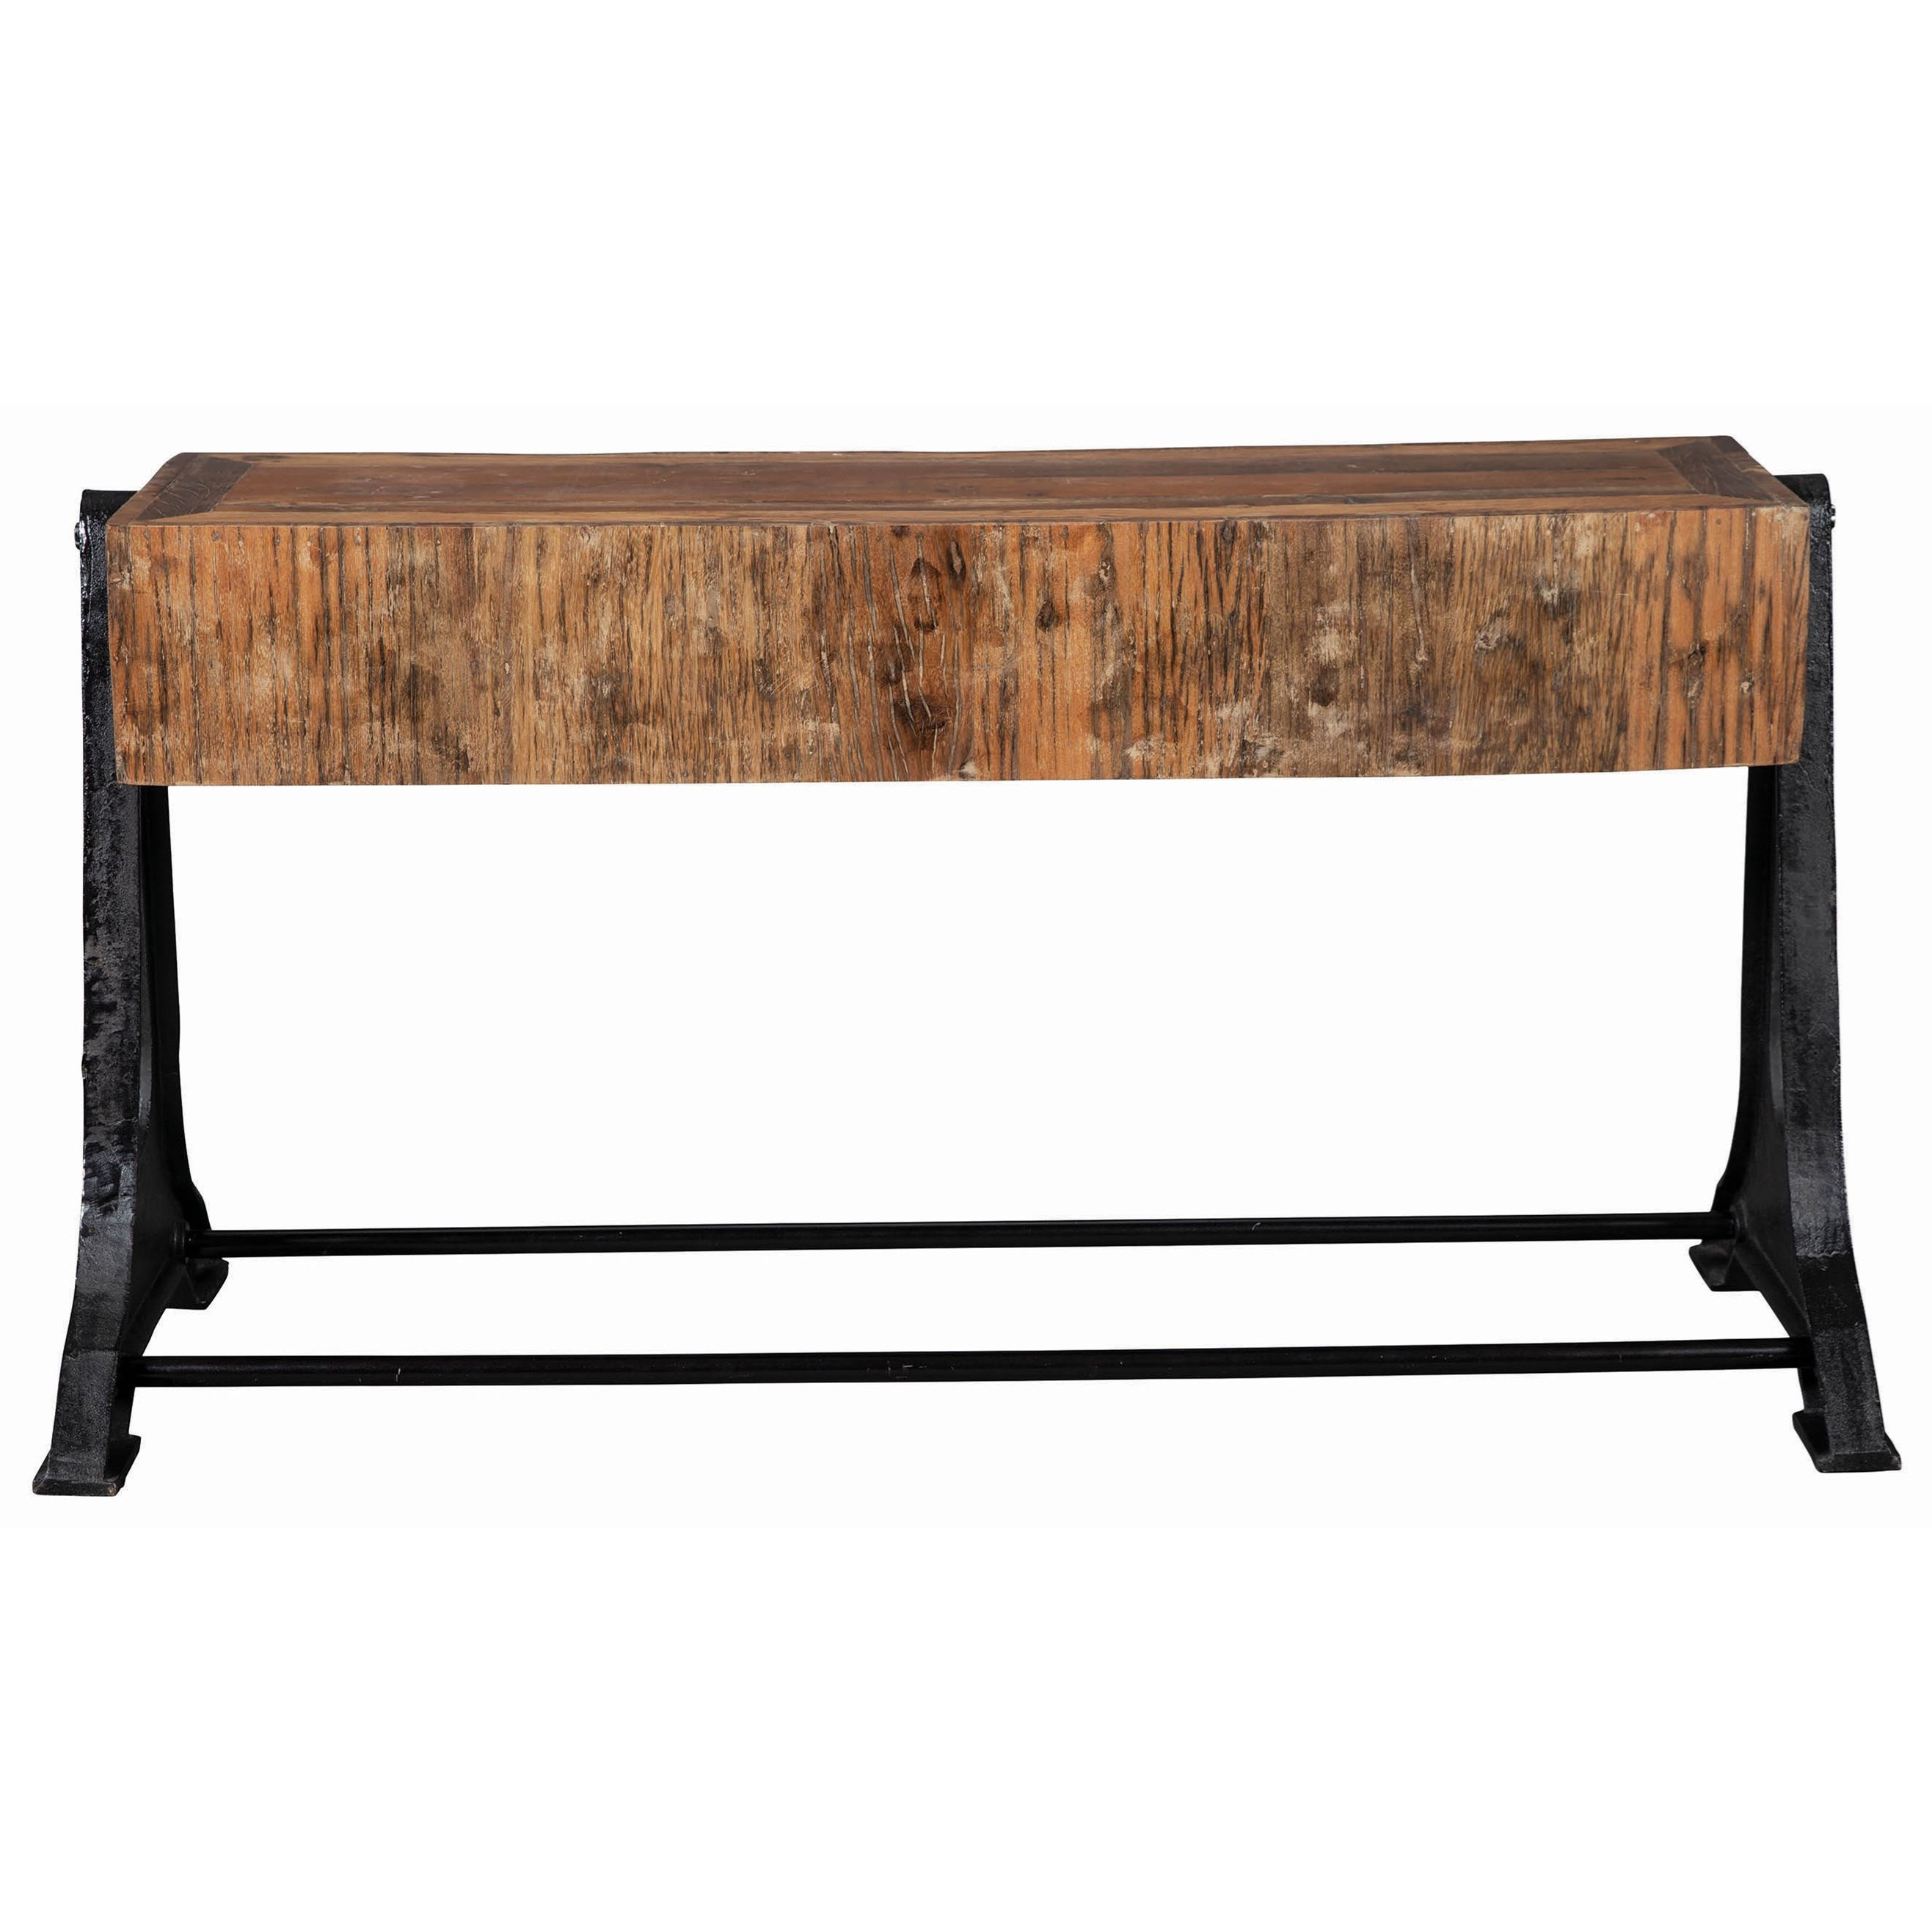 75340 Sofa Table by Coaster at Beds N Stuff